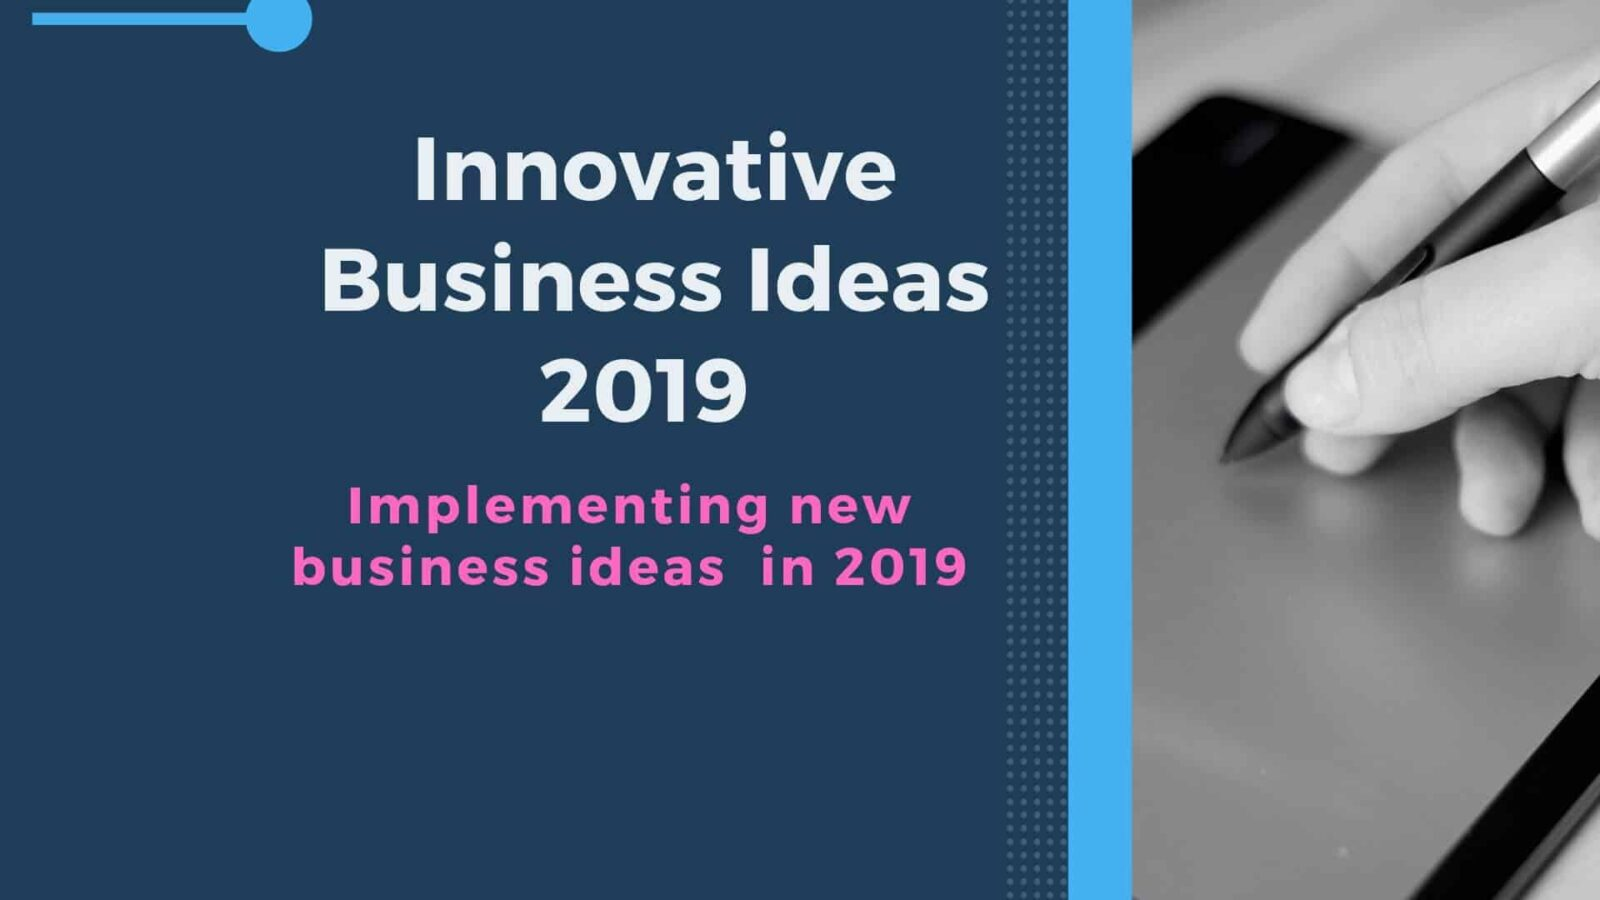 Implementing Innovative business ideas in 2019